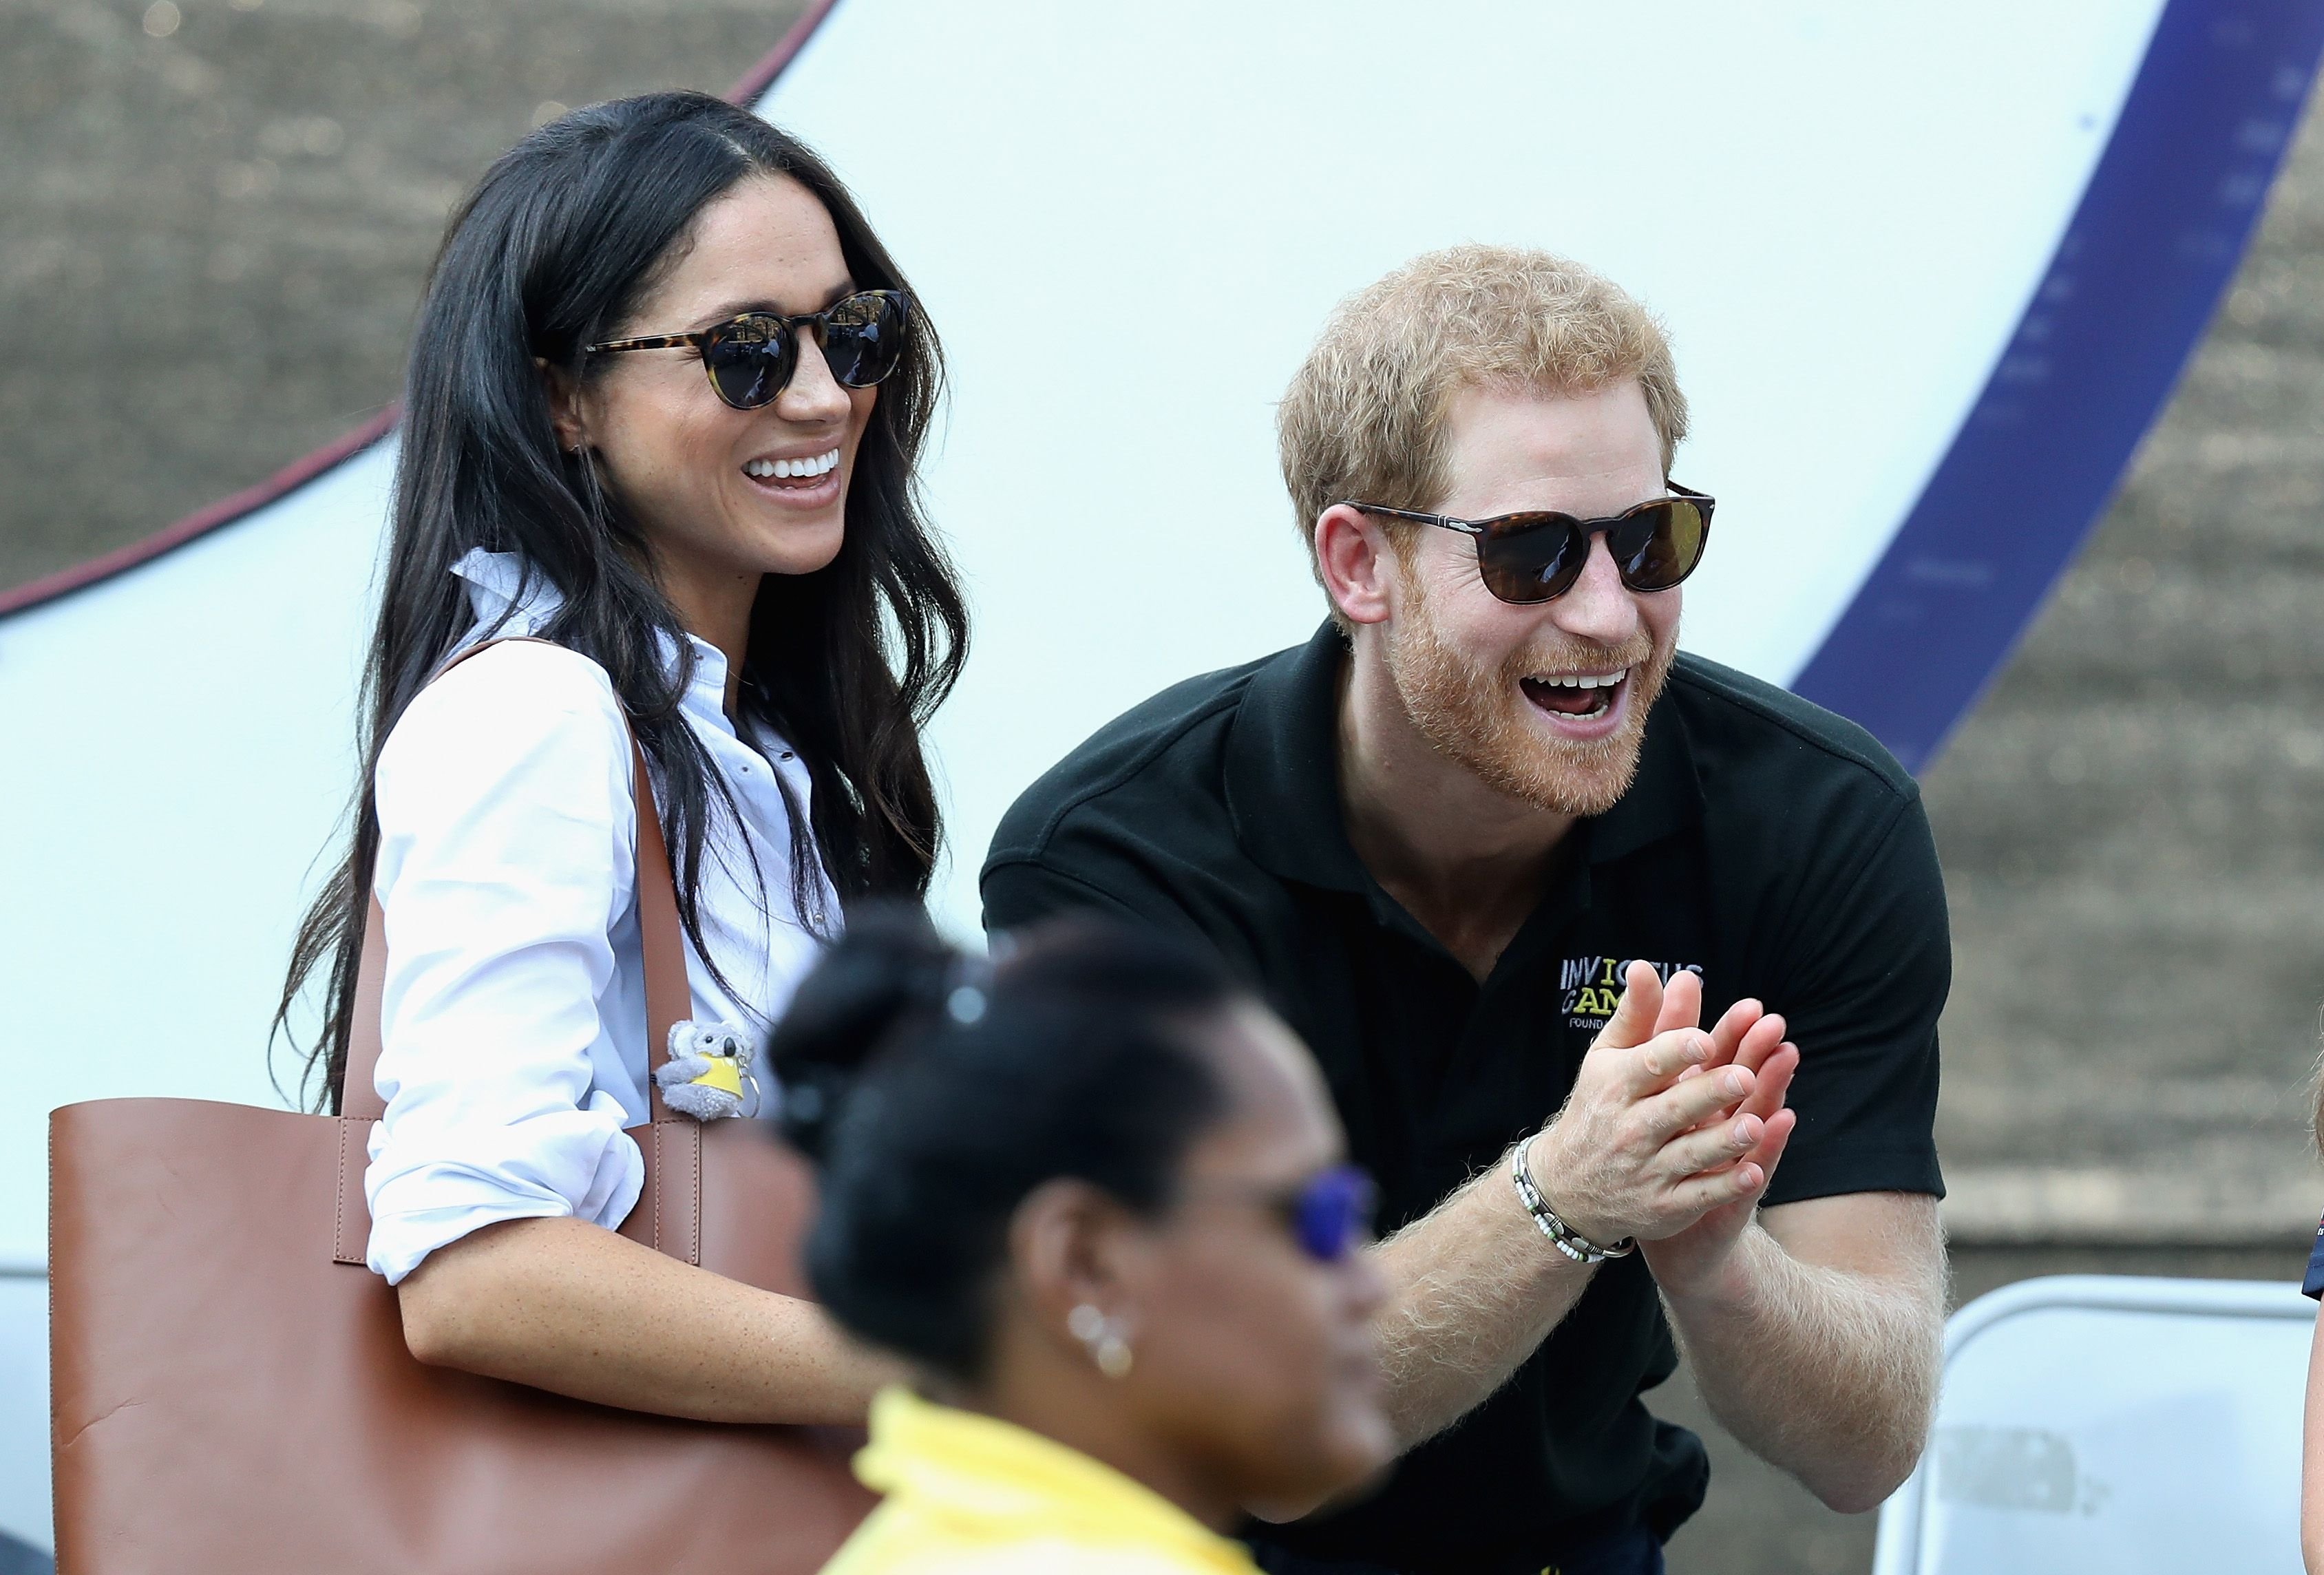 Prince Harry and Meghan Markle at a Wheelchair Tennis match during the Invictus Games 2017 at Nathan Philips Square on September 25, 2017 in Toronto, Canada | Photo: Getty Images